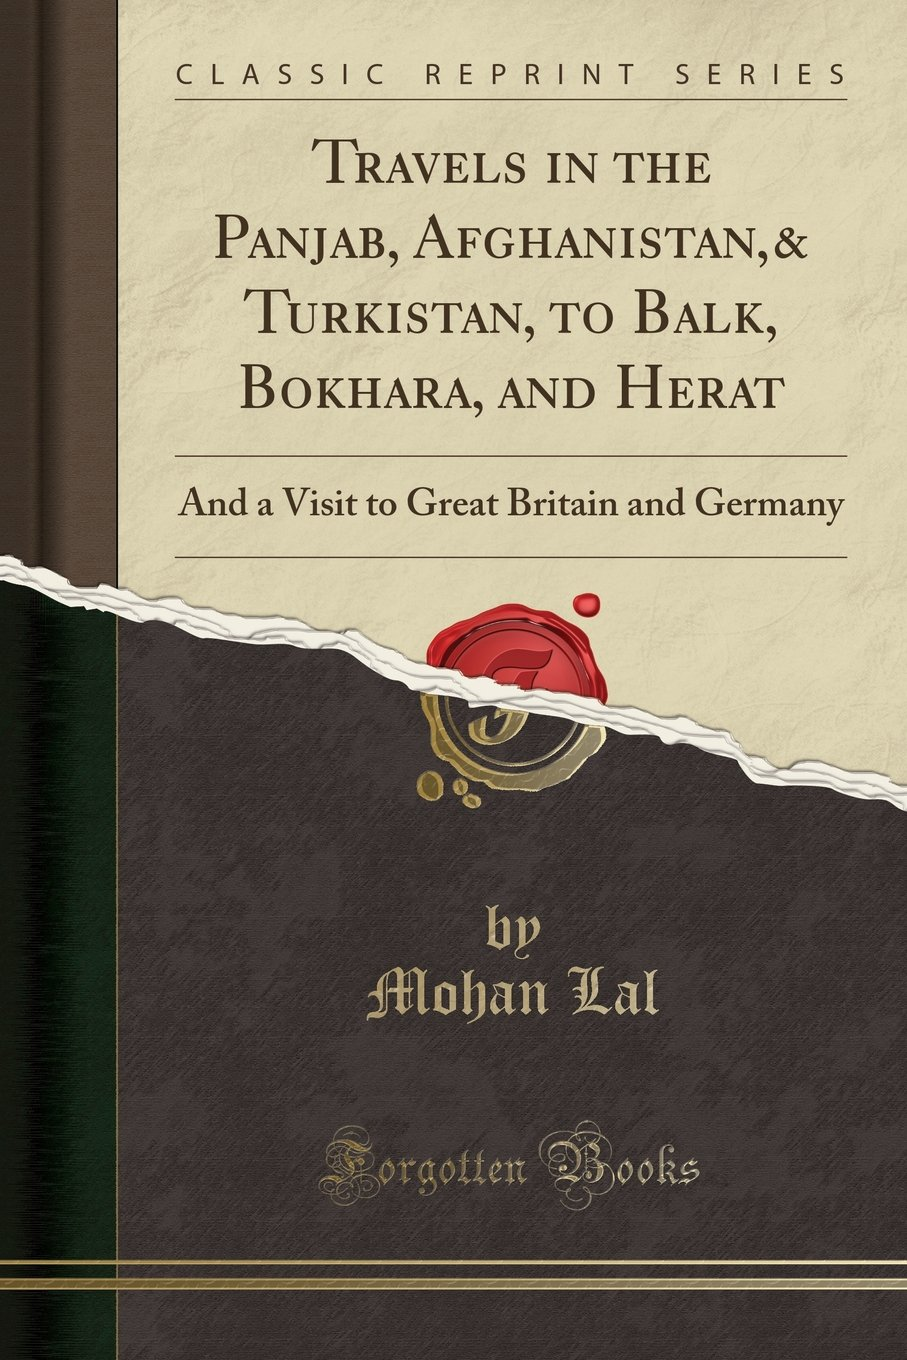 Travels in the Panjab, Afghanistan,& Turkistan, to Balk, Bokhara, and Herat: And a Visit to Great Britain and Germany (Classic Reprint)